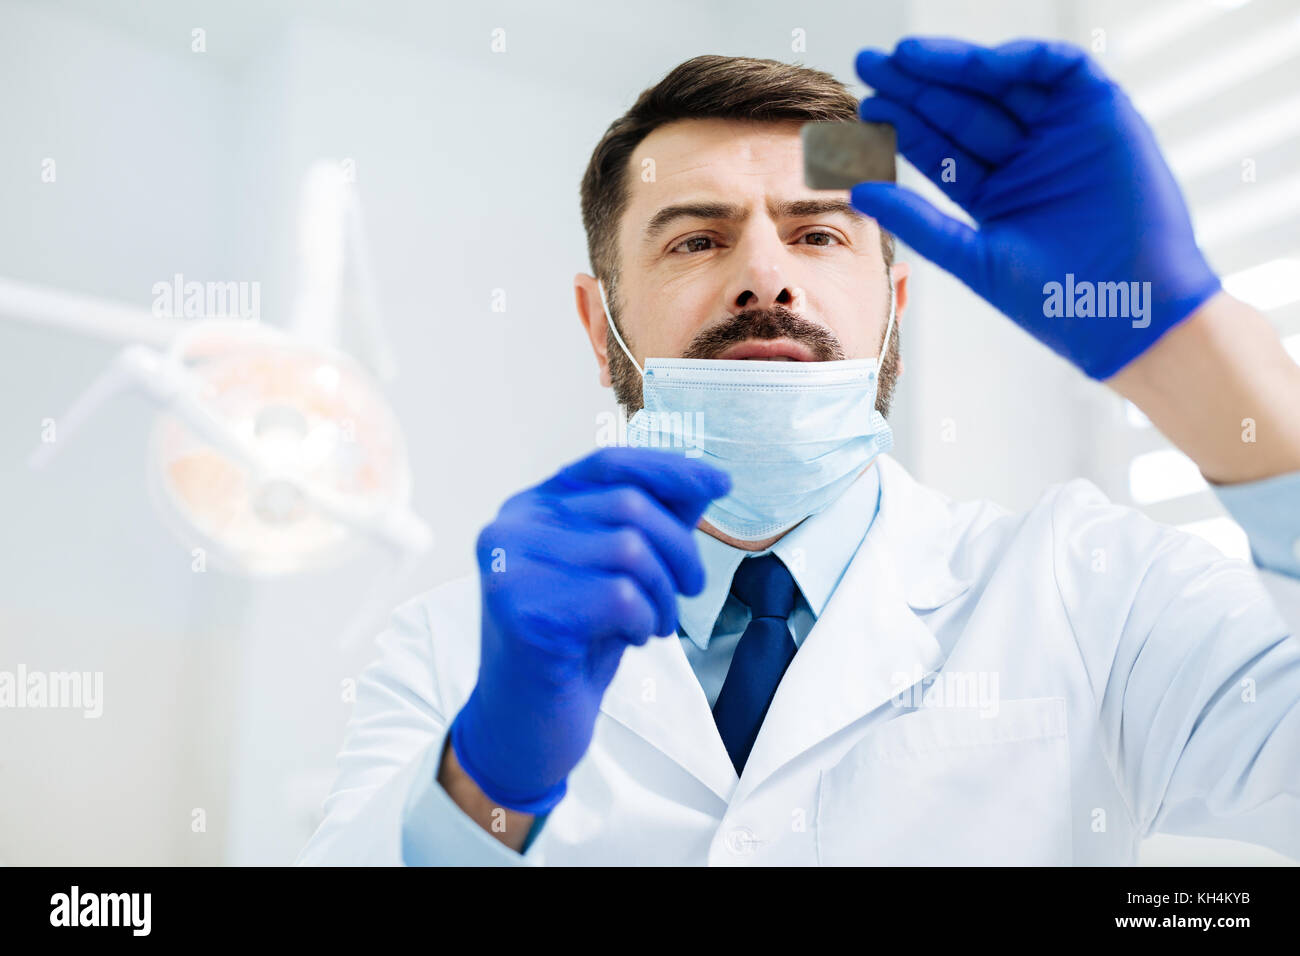 Attentive dentist looking at the Xray image - Stock Image